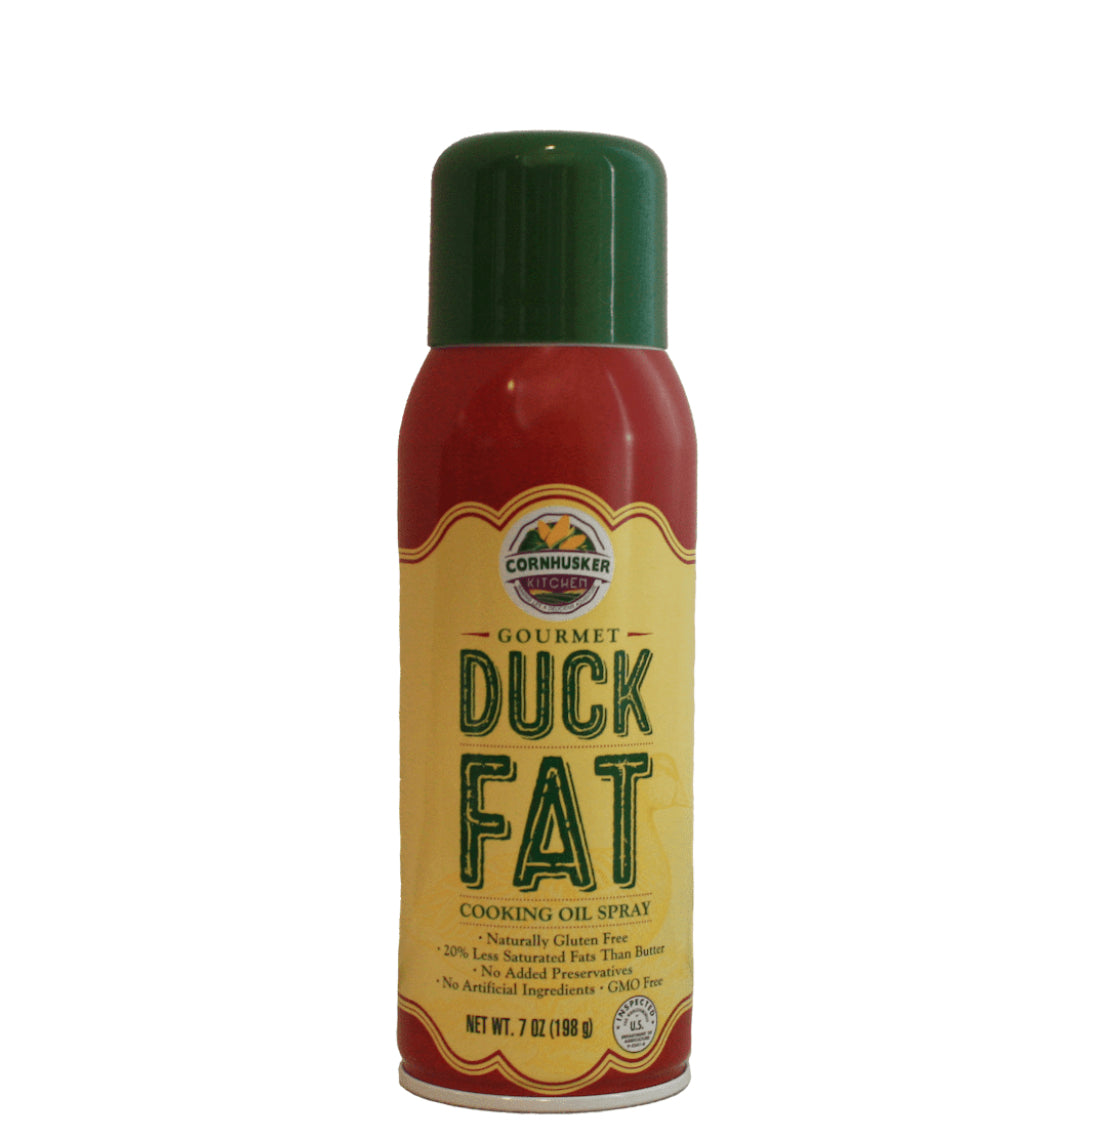 Gourmet Duck Fat Cooking Oil Spray - Full Throttle Barbeque